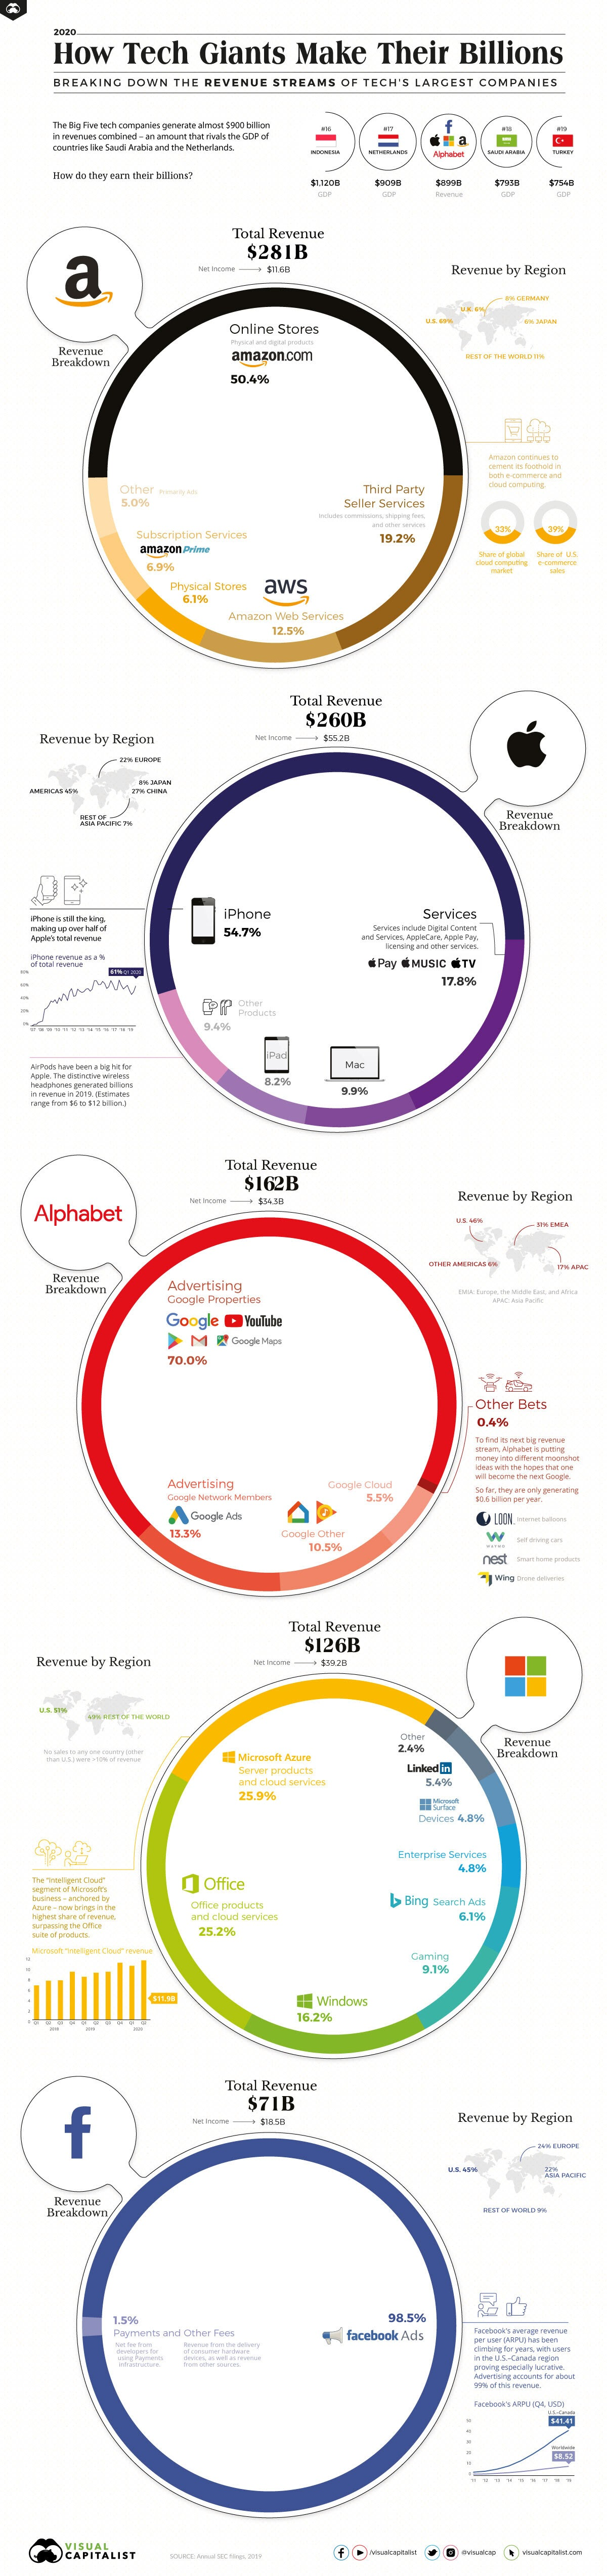 How Tech Giants Makes Their Billions #infographic